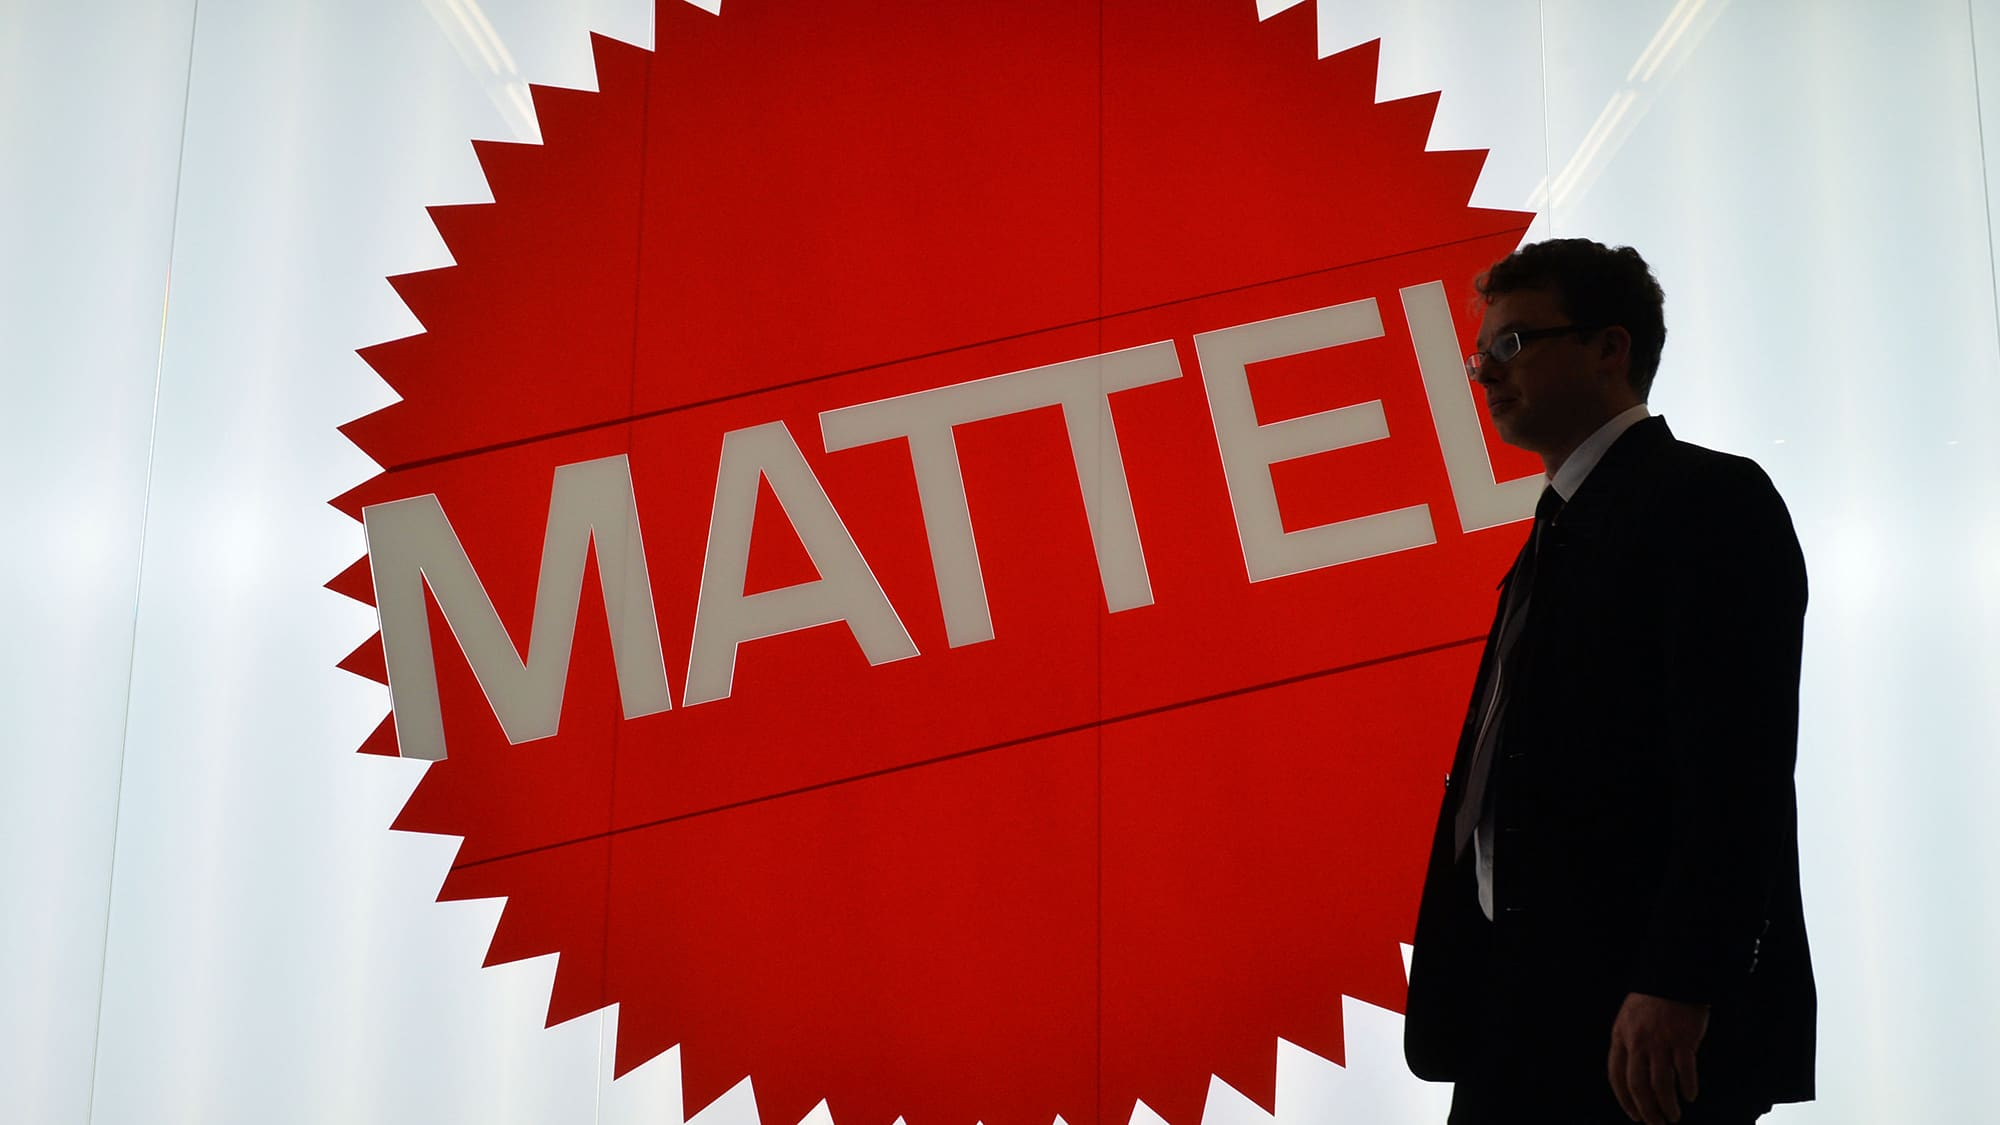 Mattel CEO: Strong consumer demand led to 'best performance in years' - CNBC